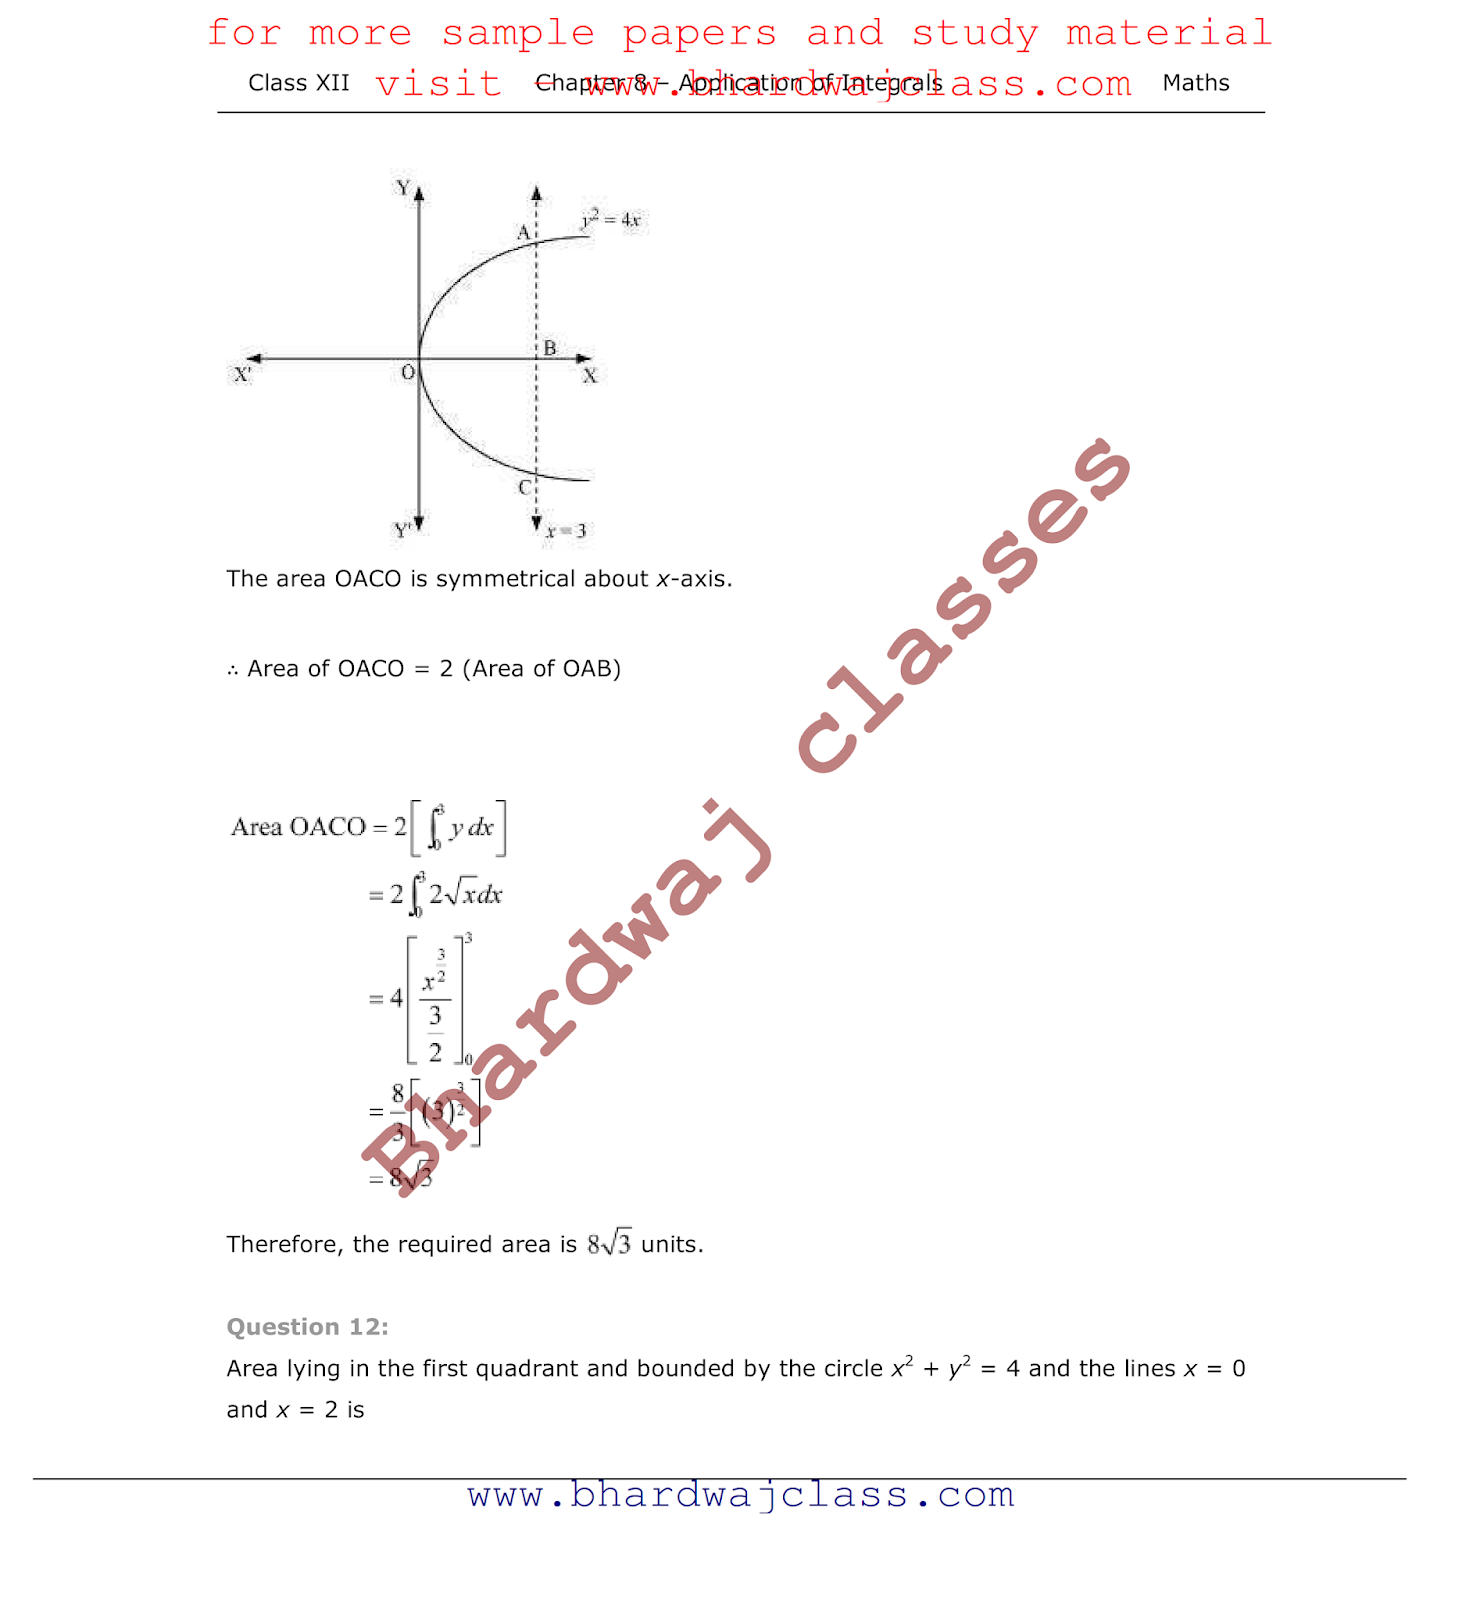 CBSE Class 12 Maths NCERT Solutions chapter - 8